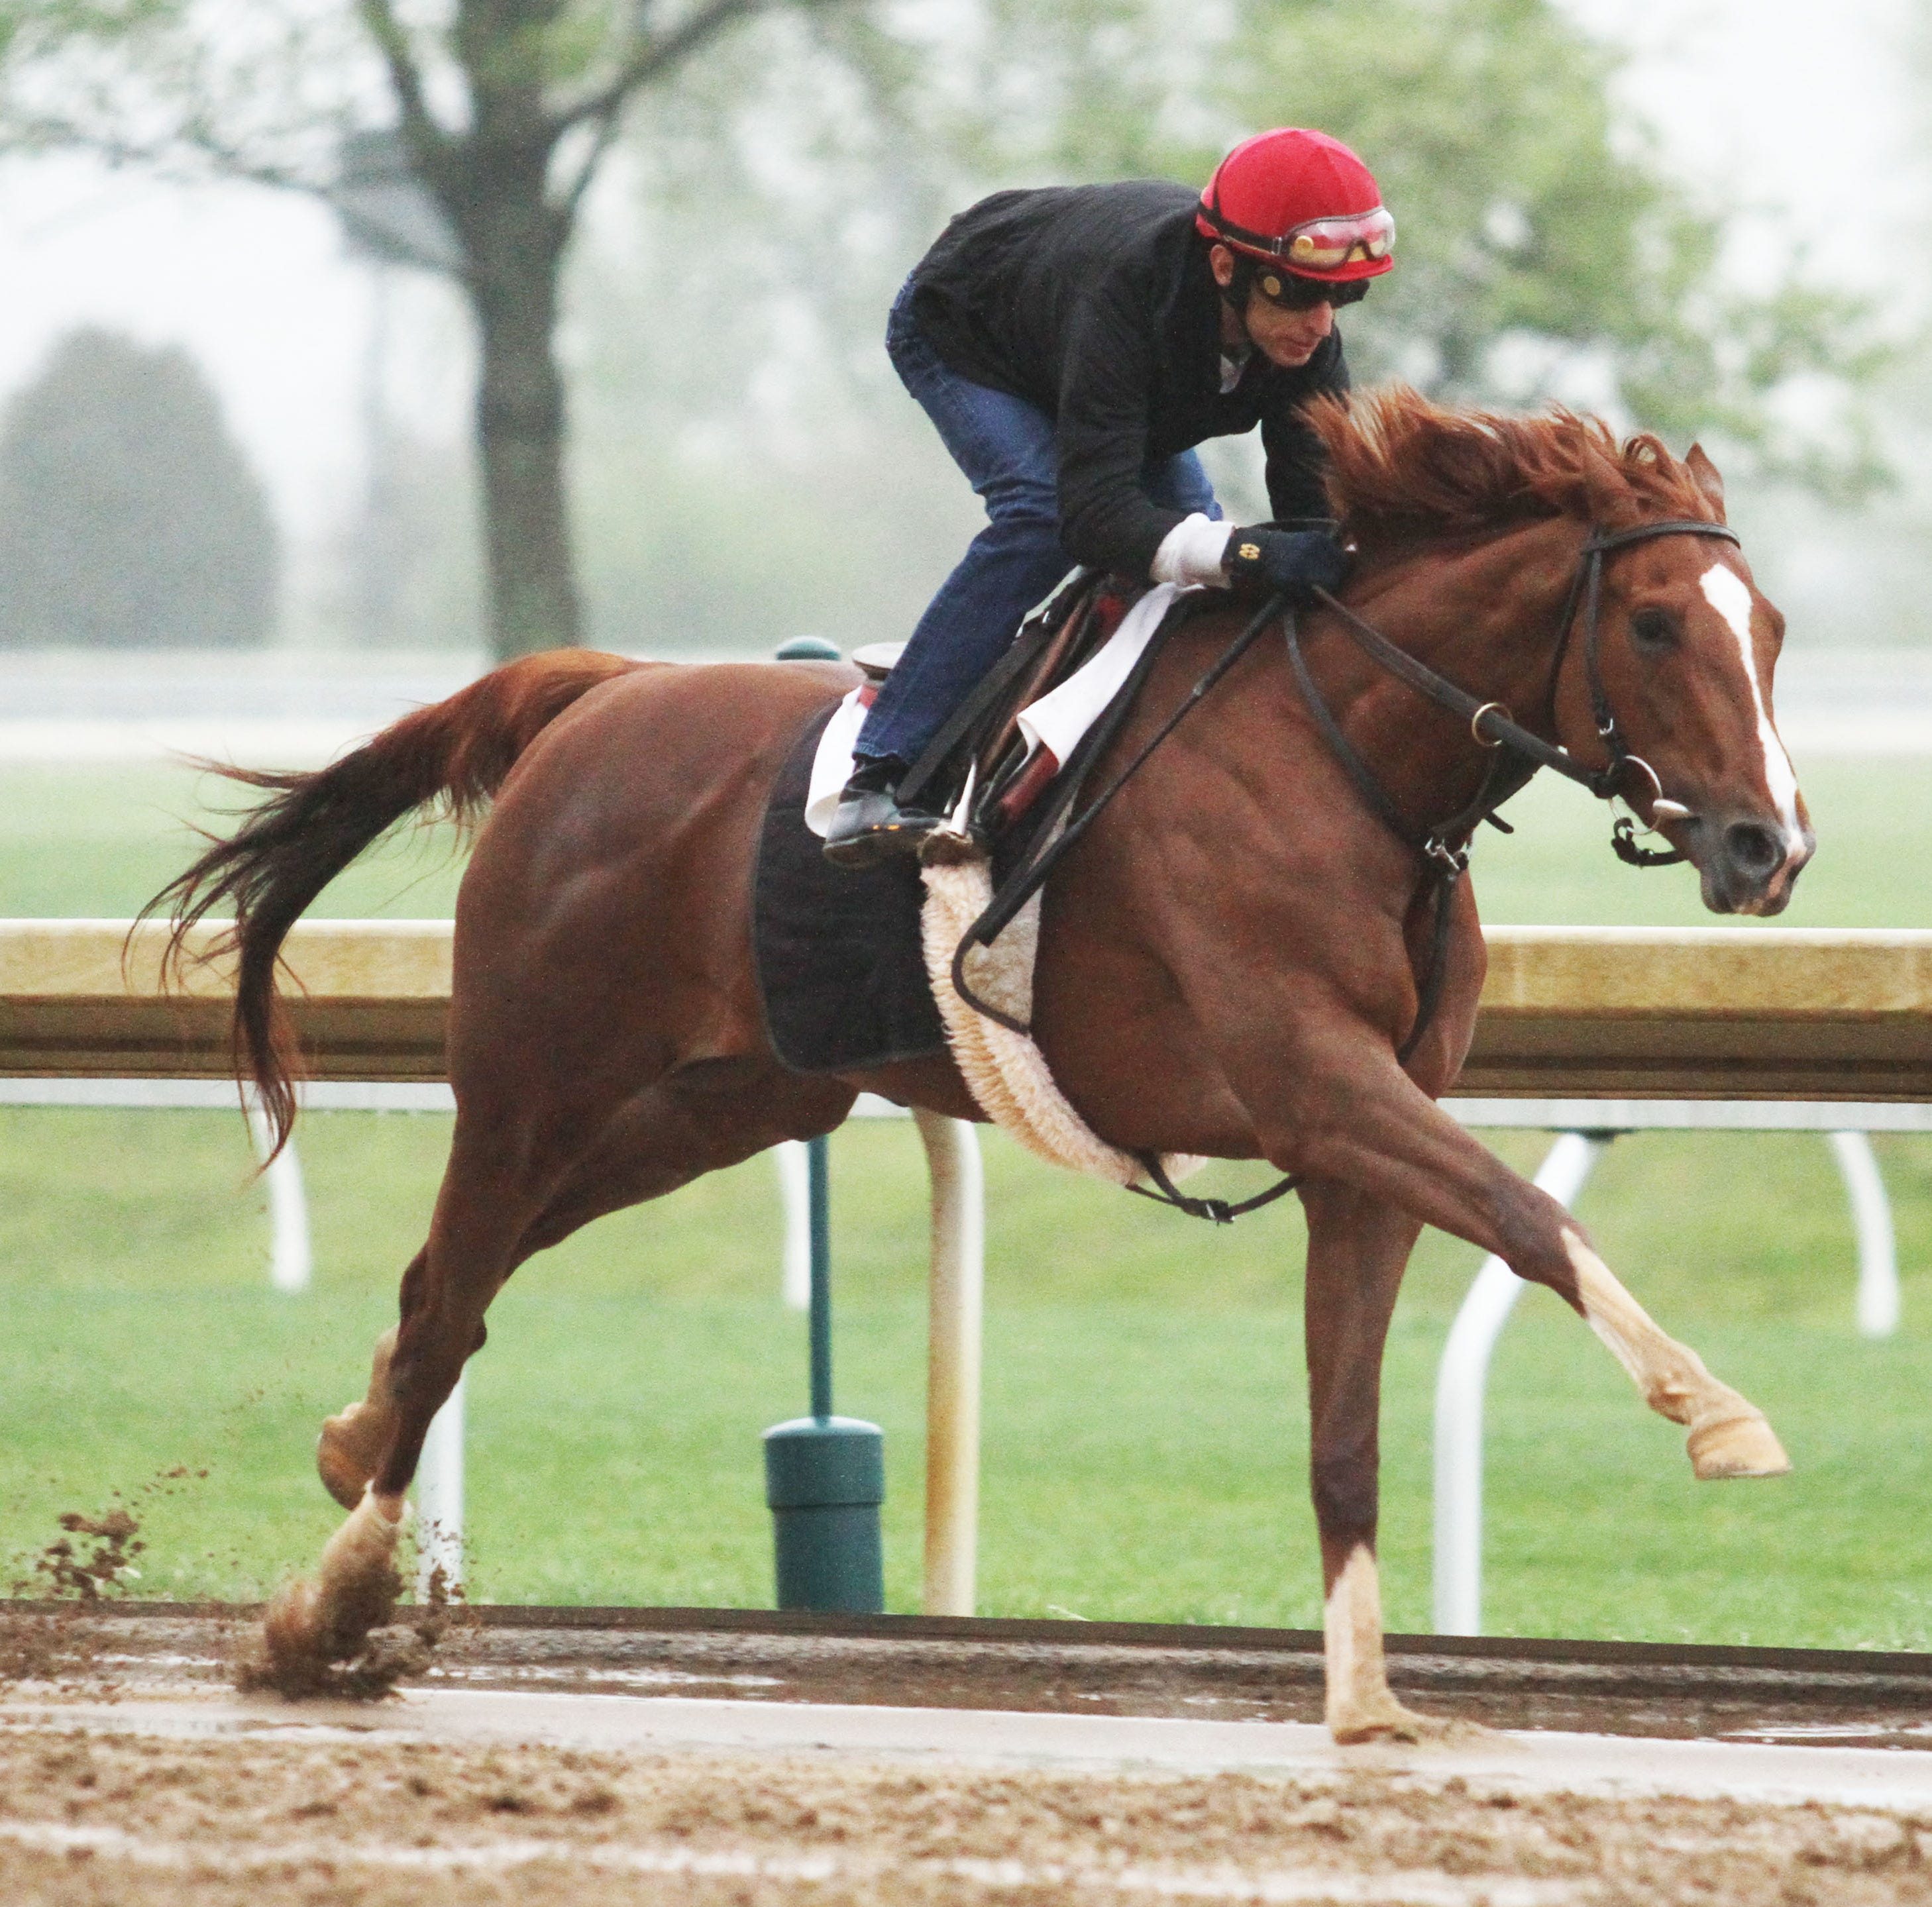 With 2 weeks until the Kentucky Derby, several contenders run next-to-last workouts